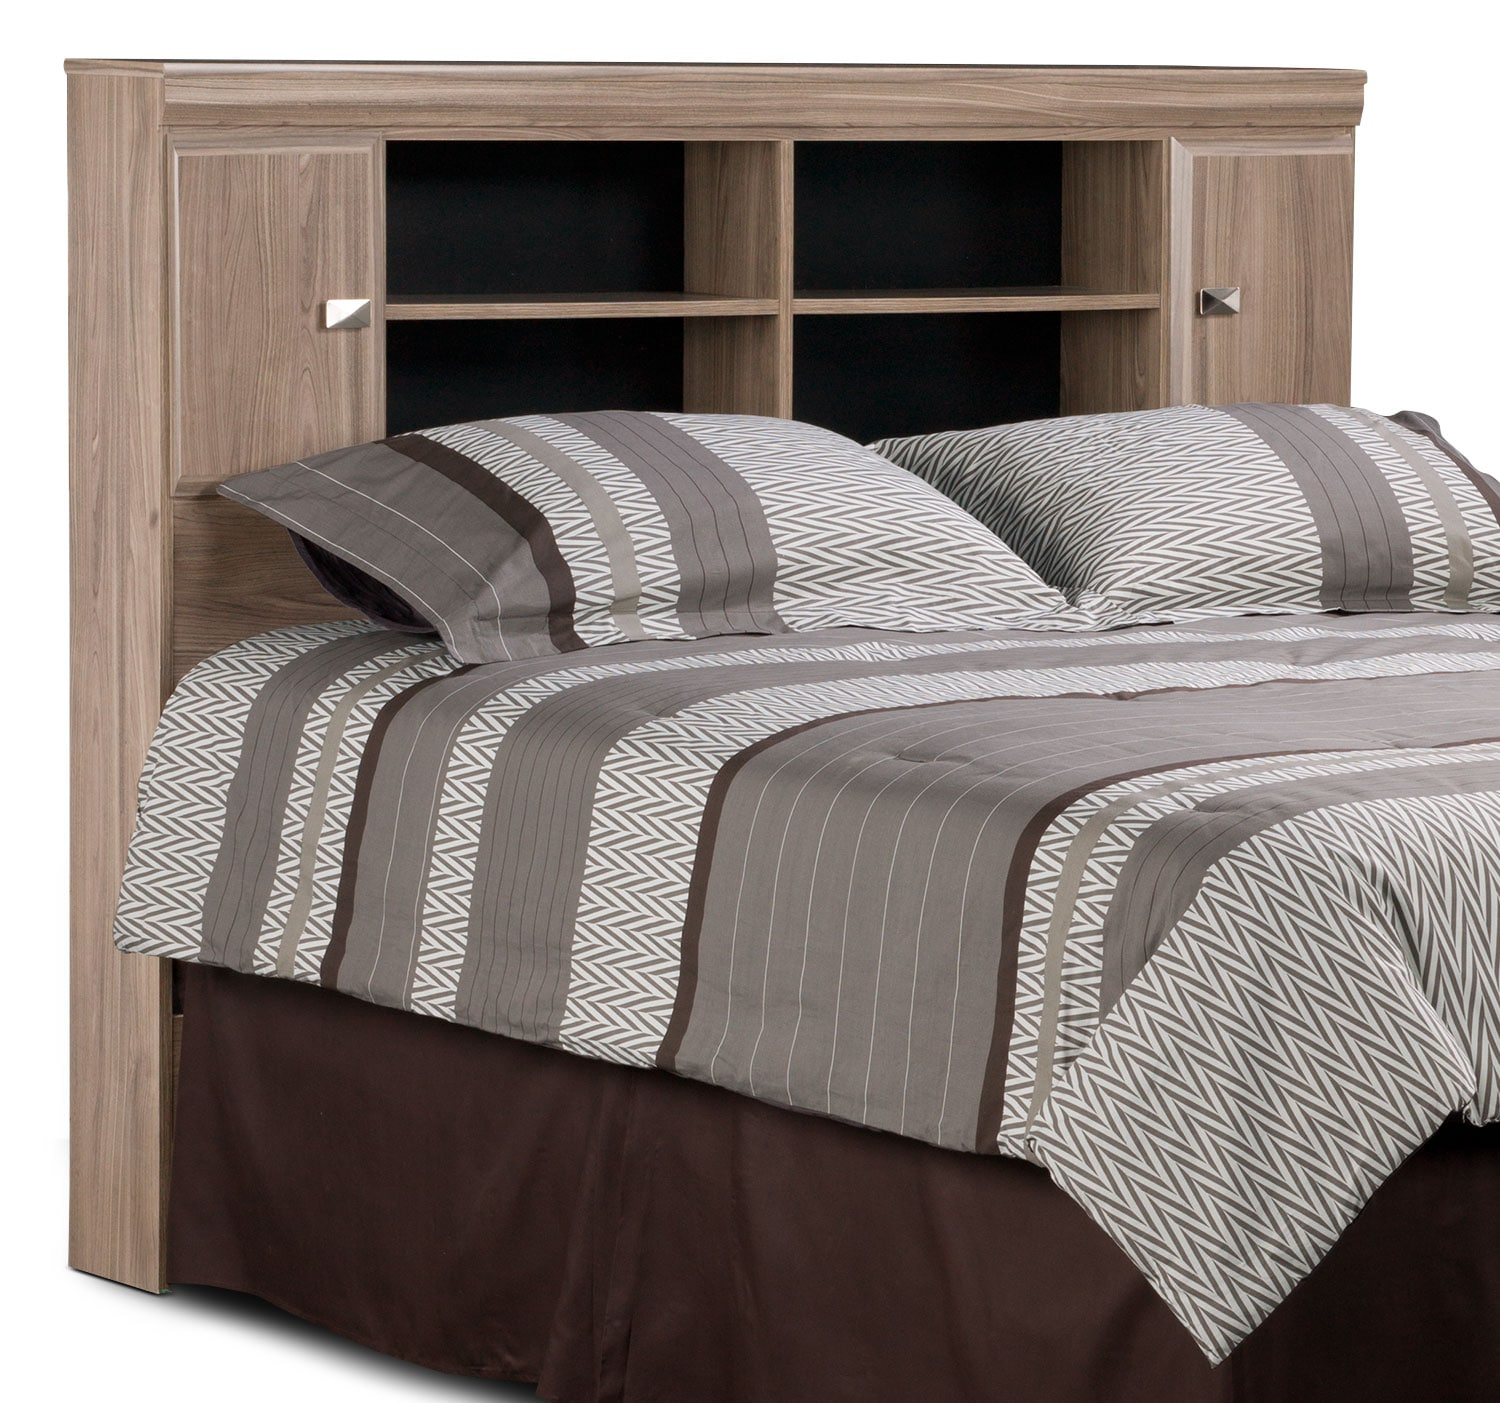 Bedroom Furniture - Yorkdale Light Queen Bookcase Headboard